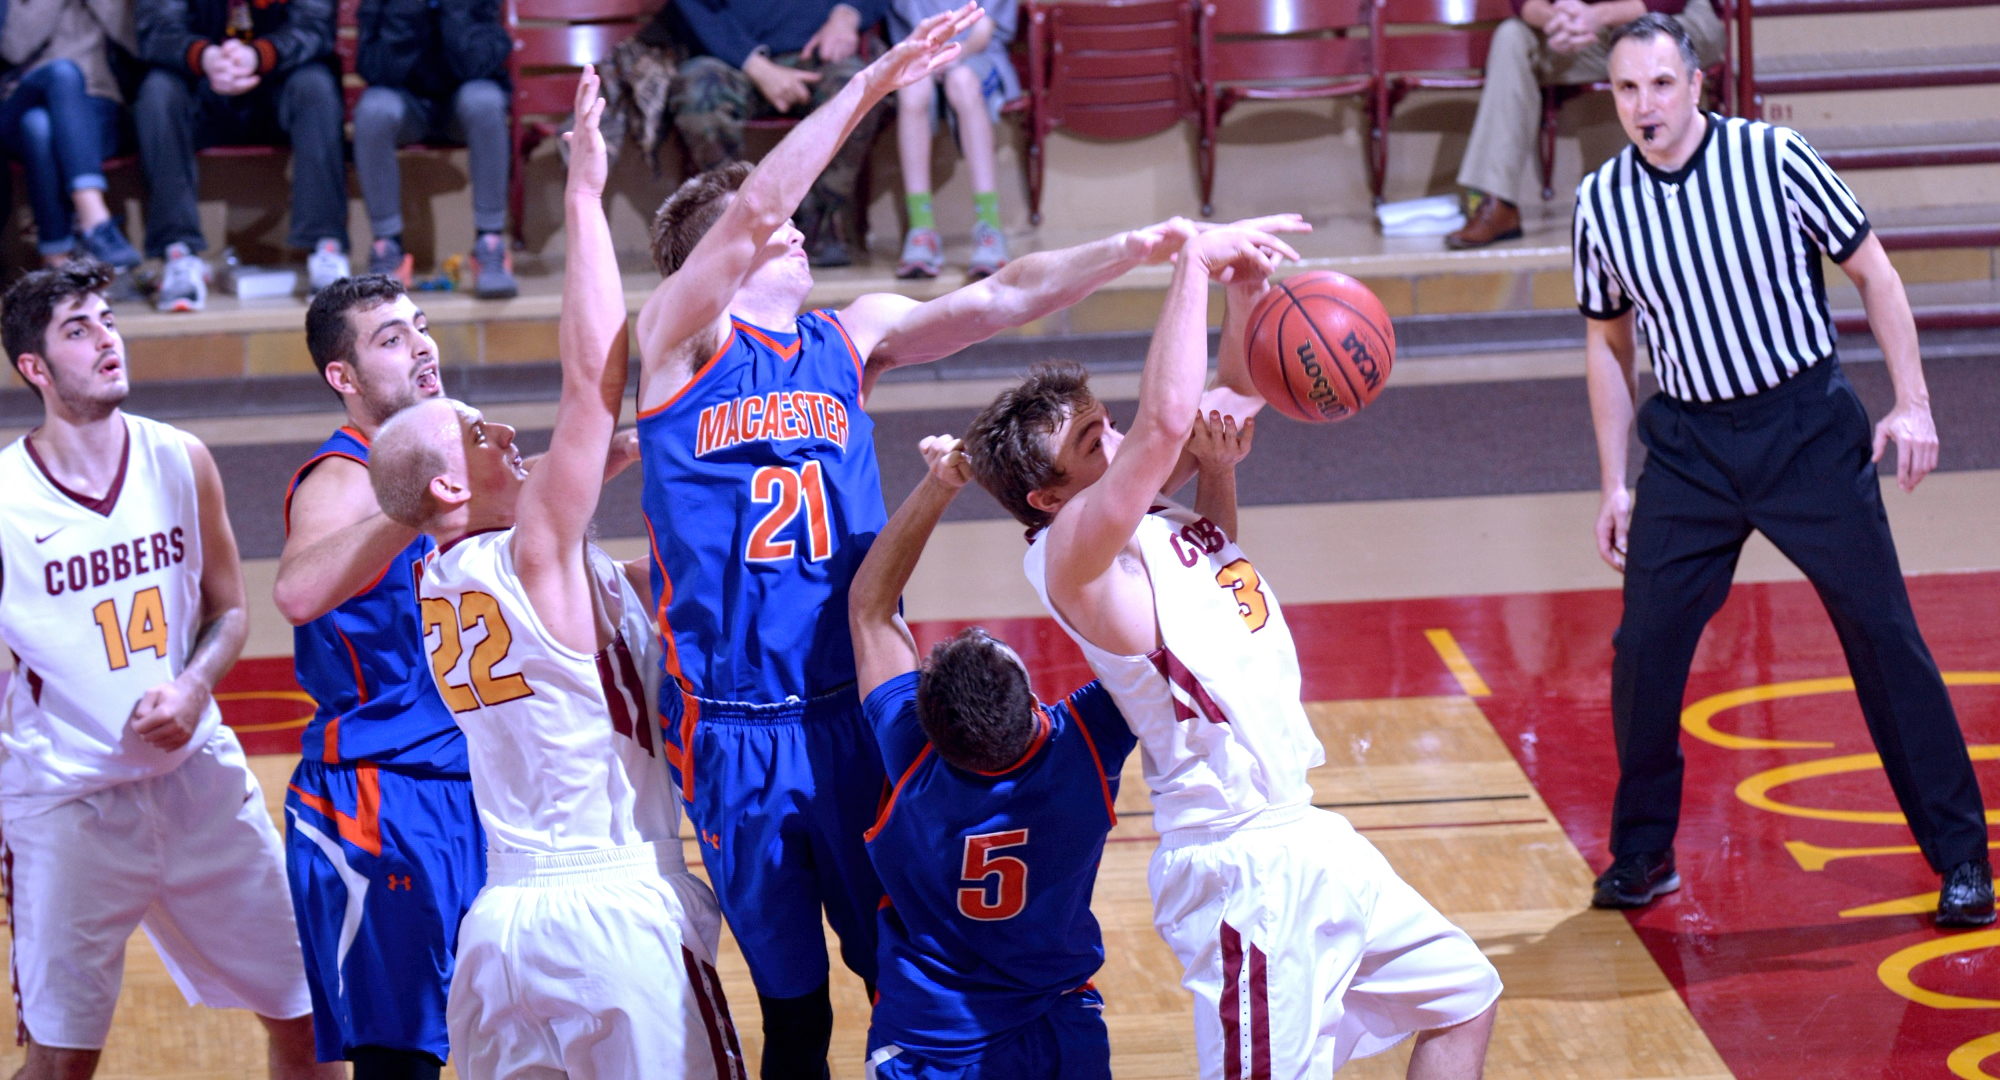 Senior Zach Kinny drives the lane during the Cobbers' game on Monday with Macalester. Kinny went 5-for-10 from the floor and finished with 16 points.